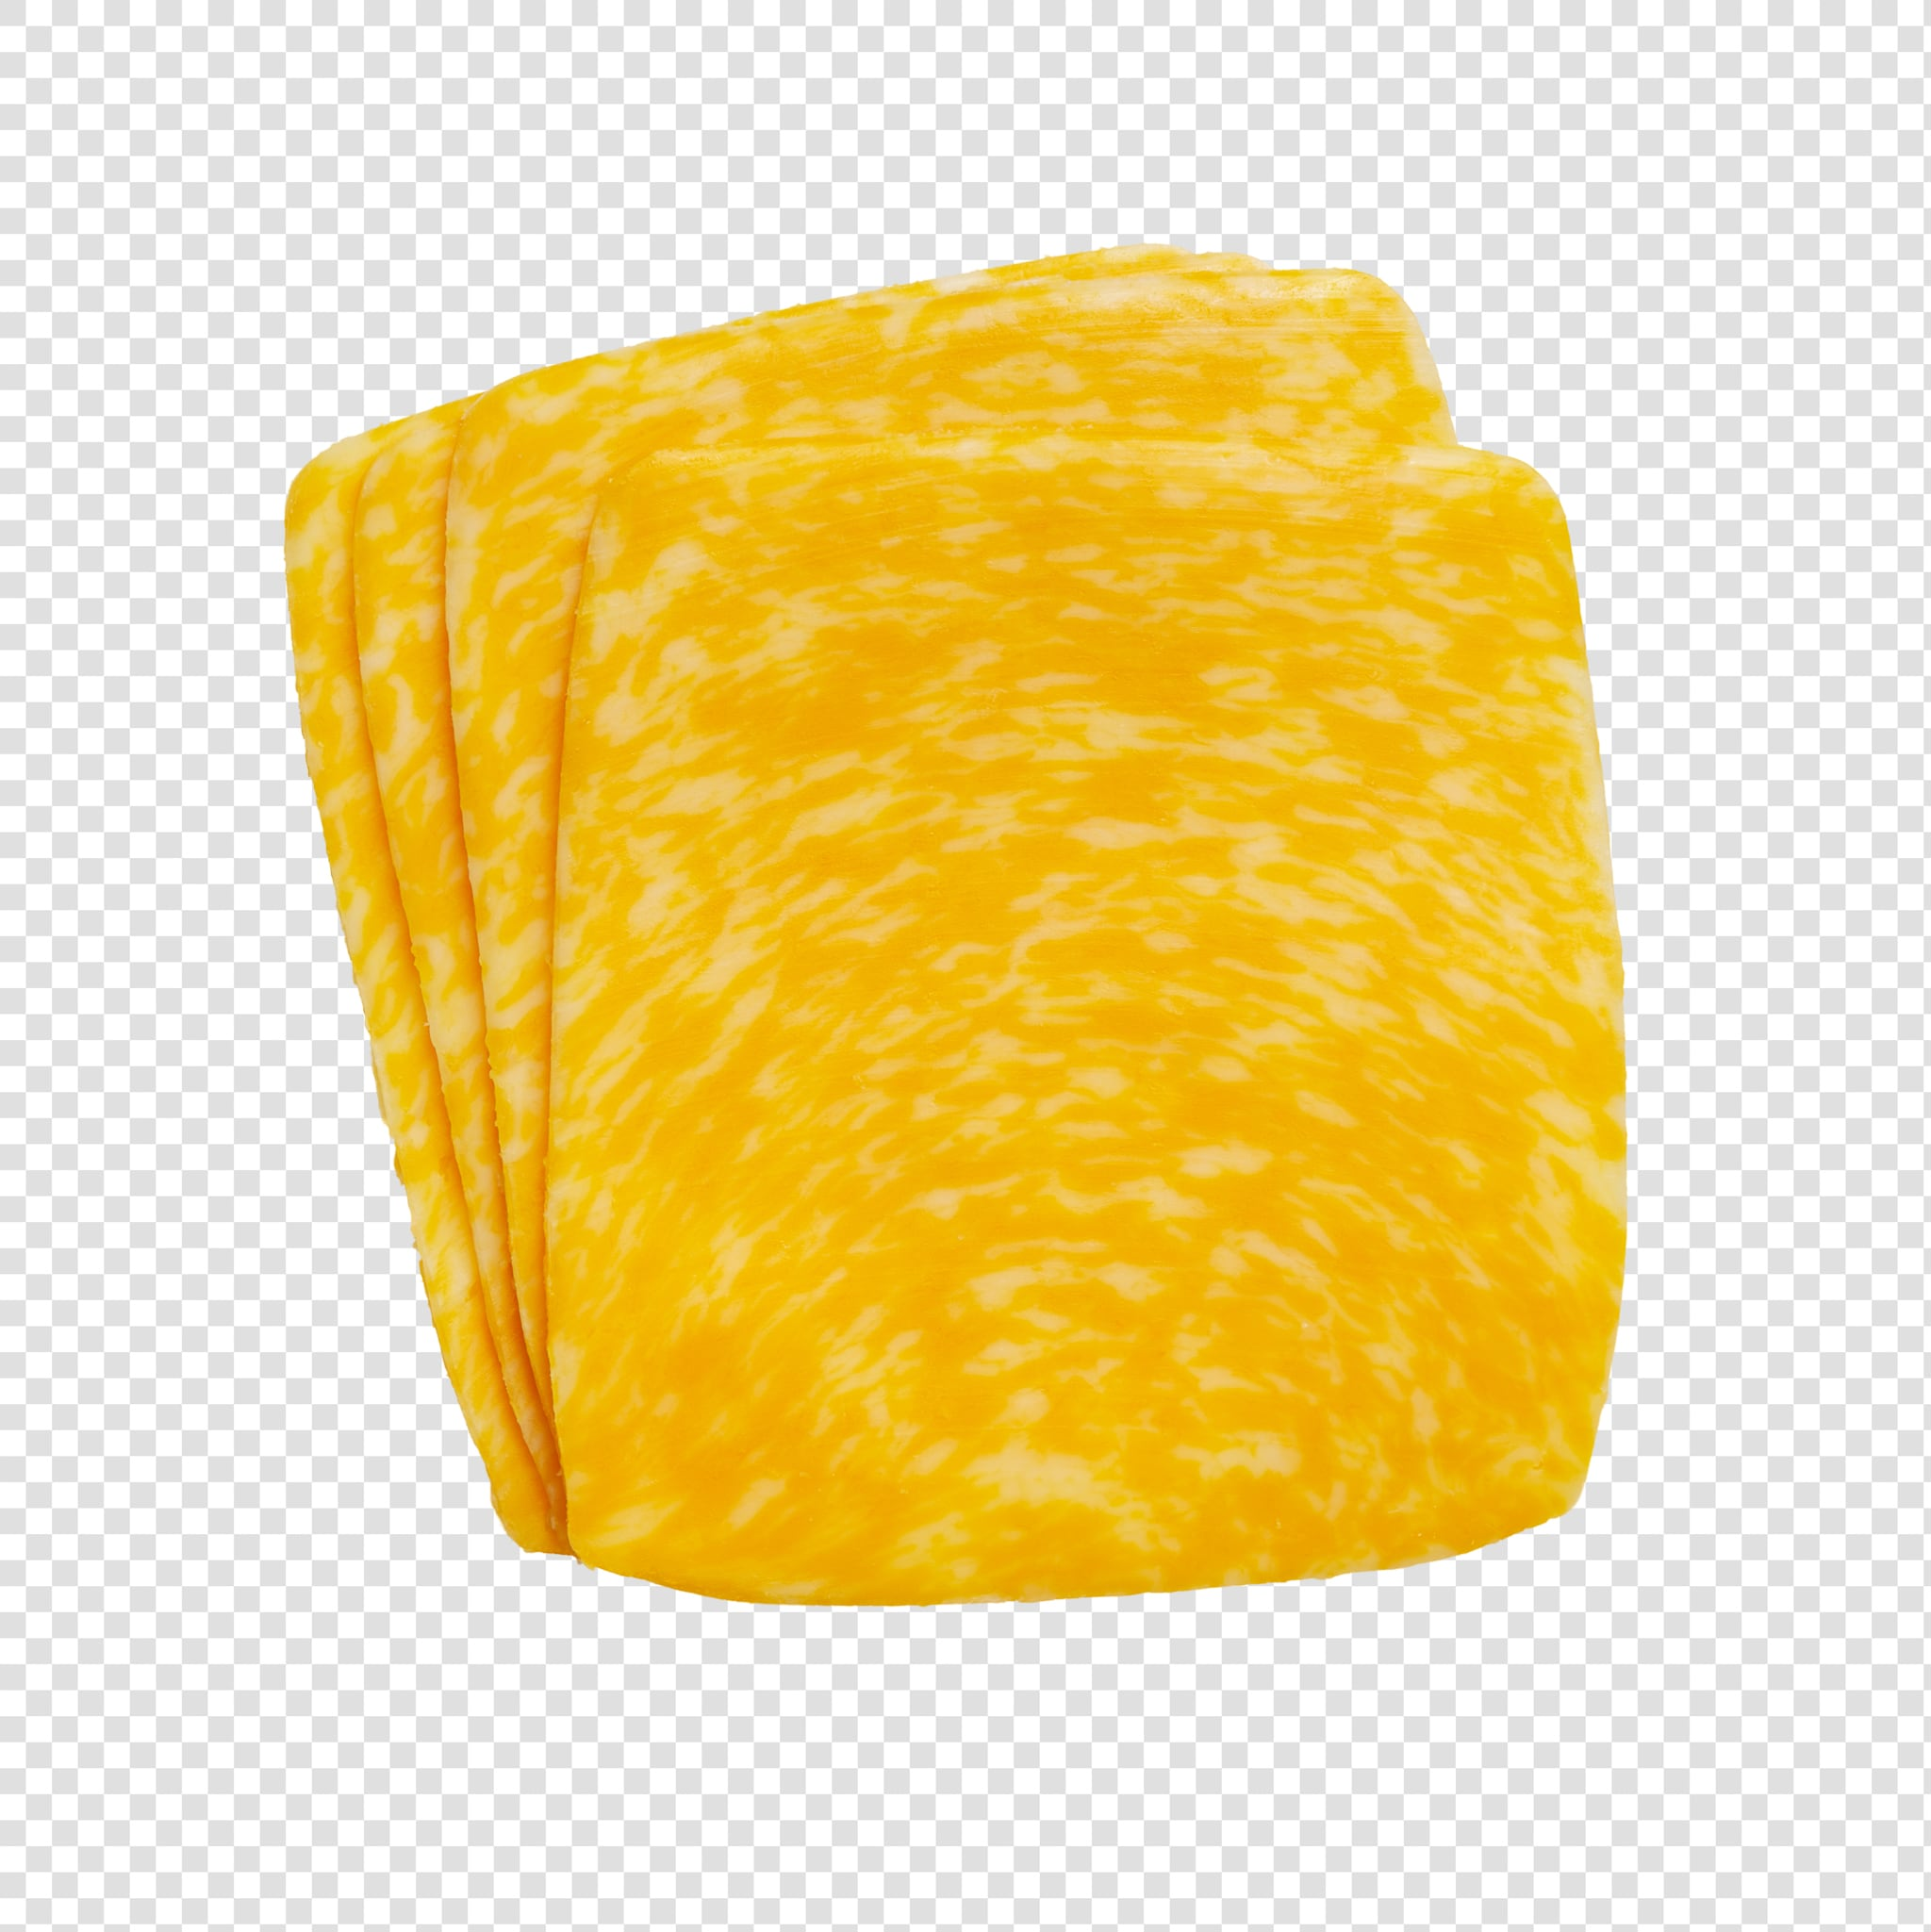 Isolated Cheese psd image